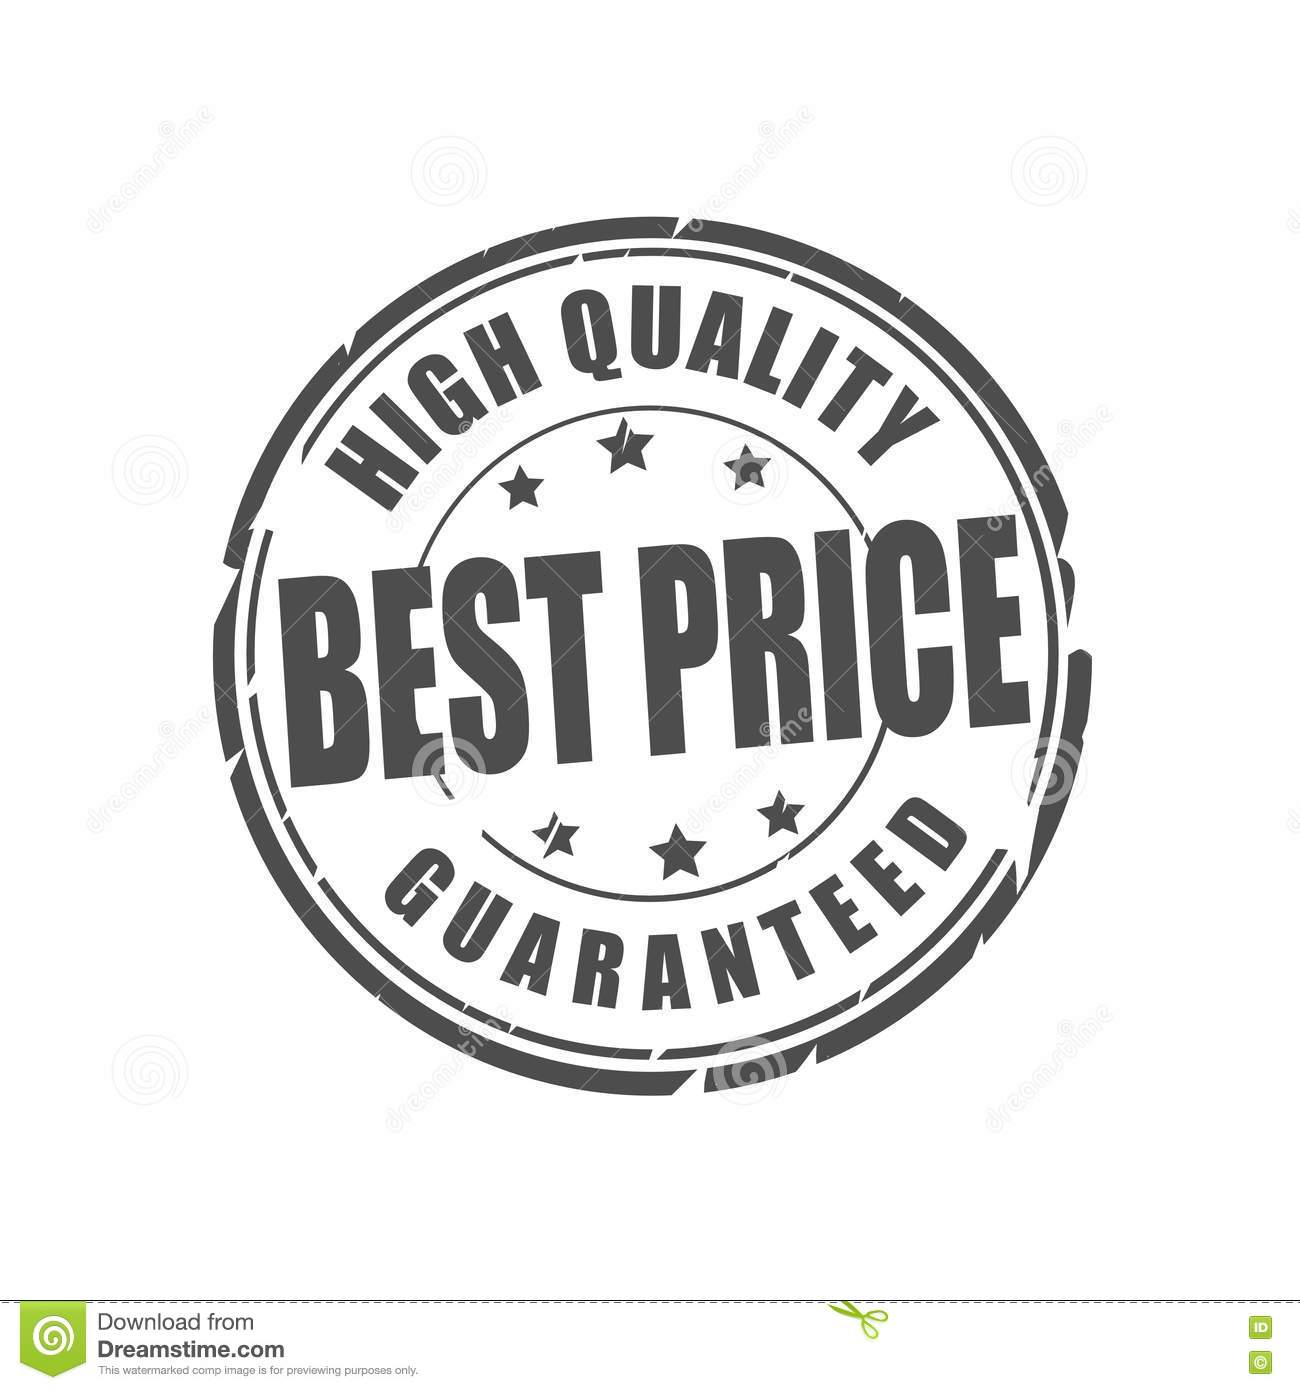 The Cheapest Price Of High: Best Price Or High Quality Vector Stamp Stock Illustration